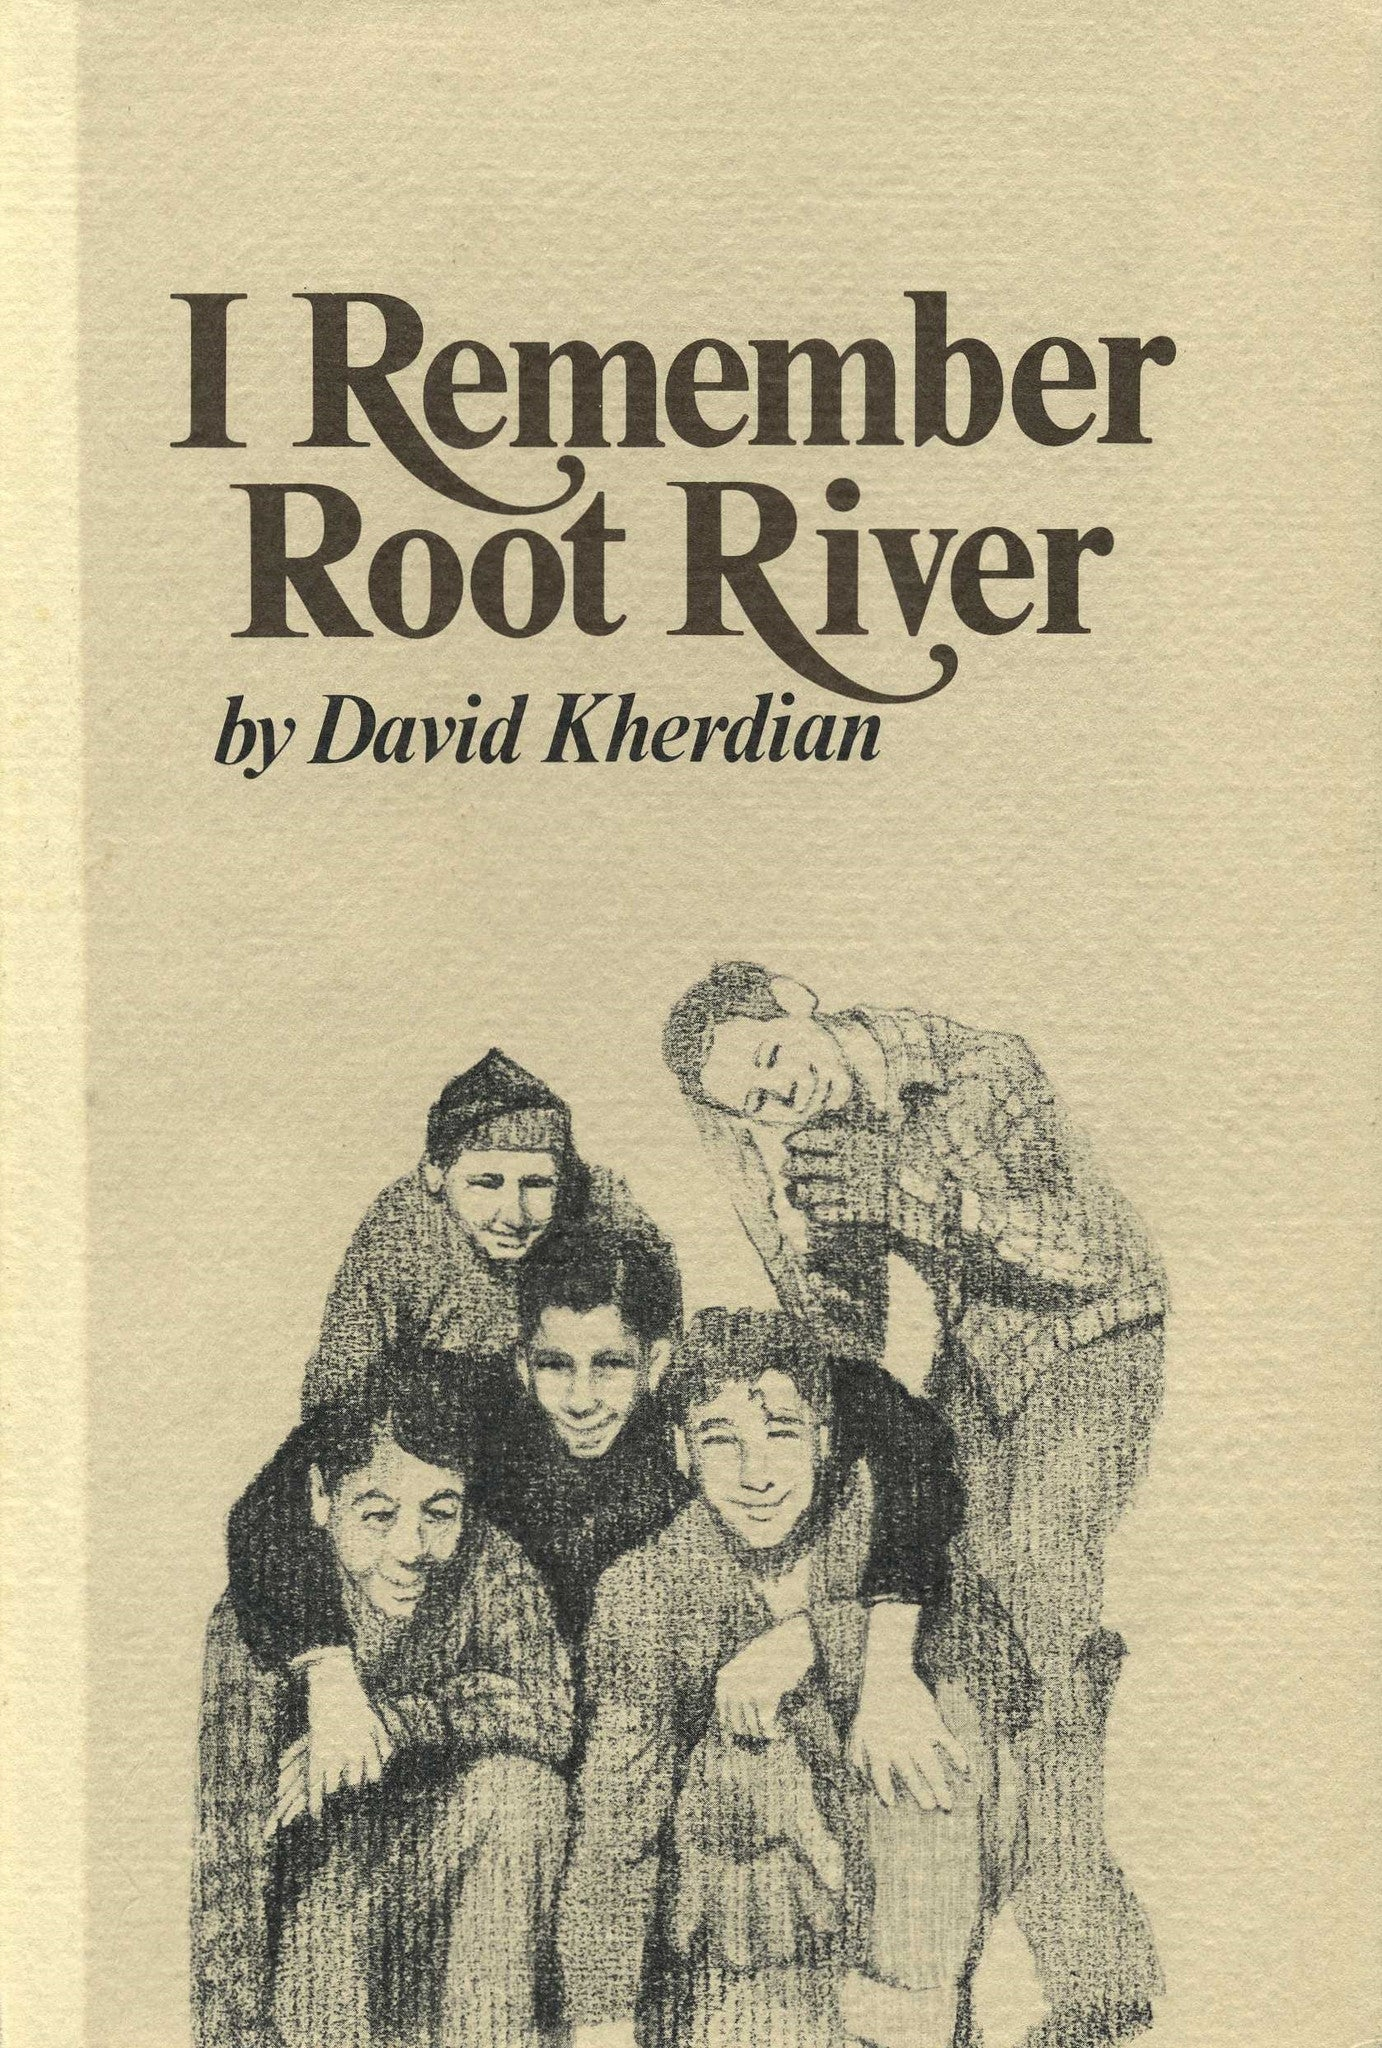 I REMEMBER ROOT RIVER